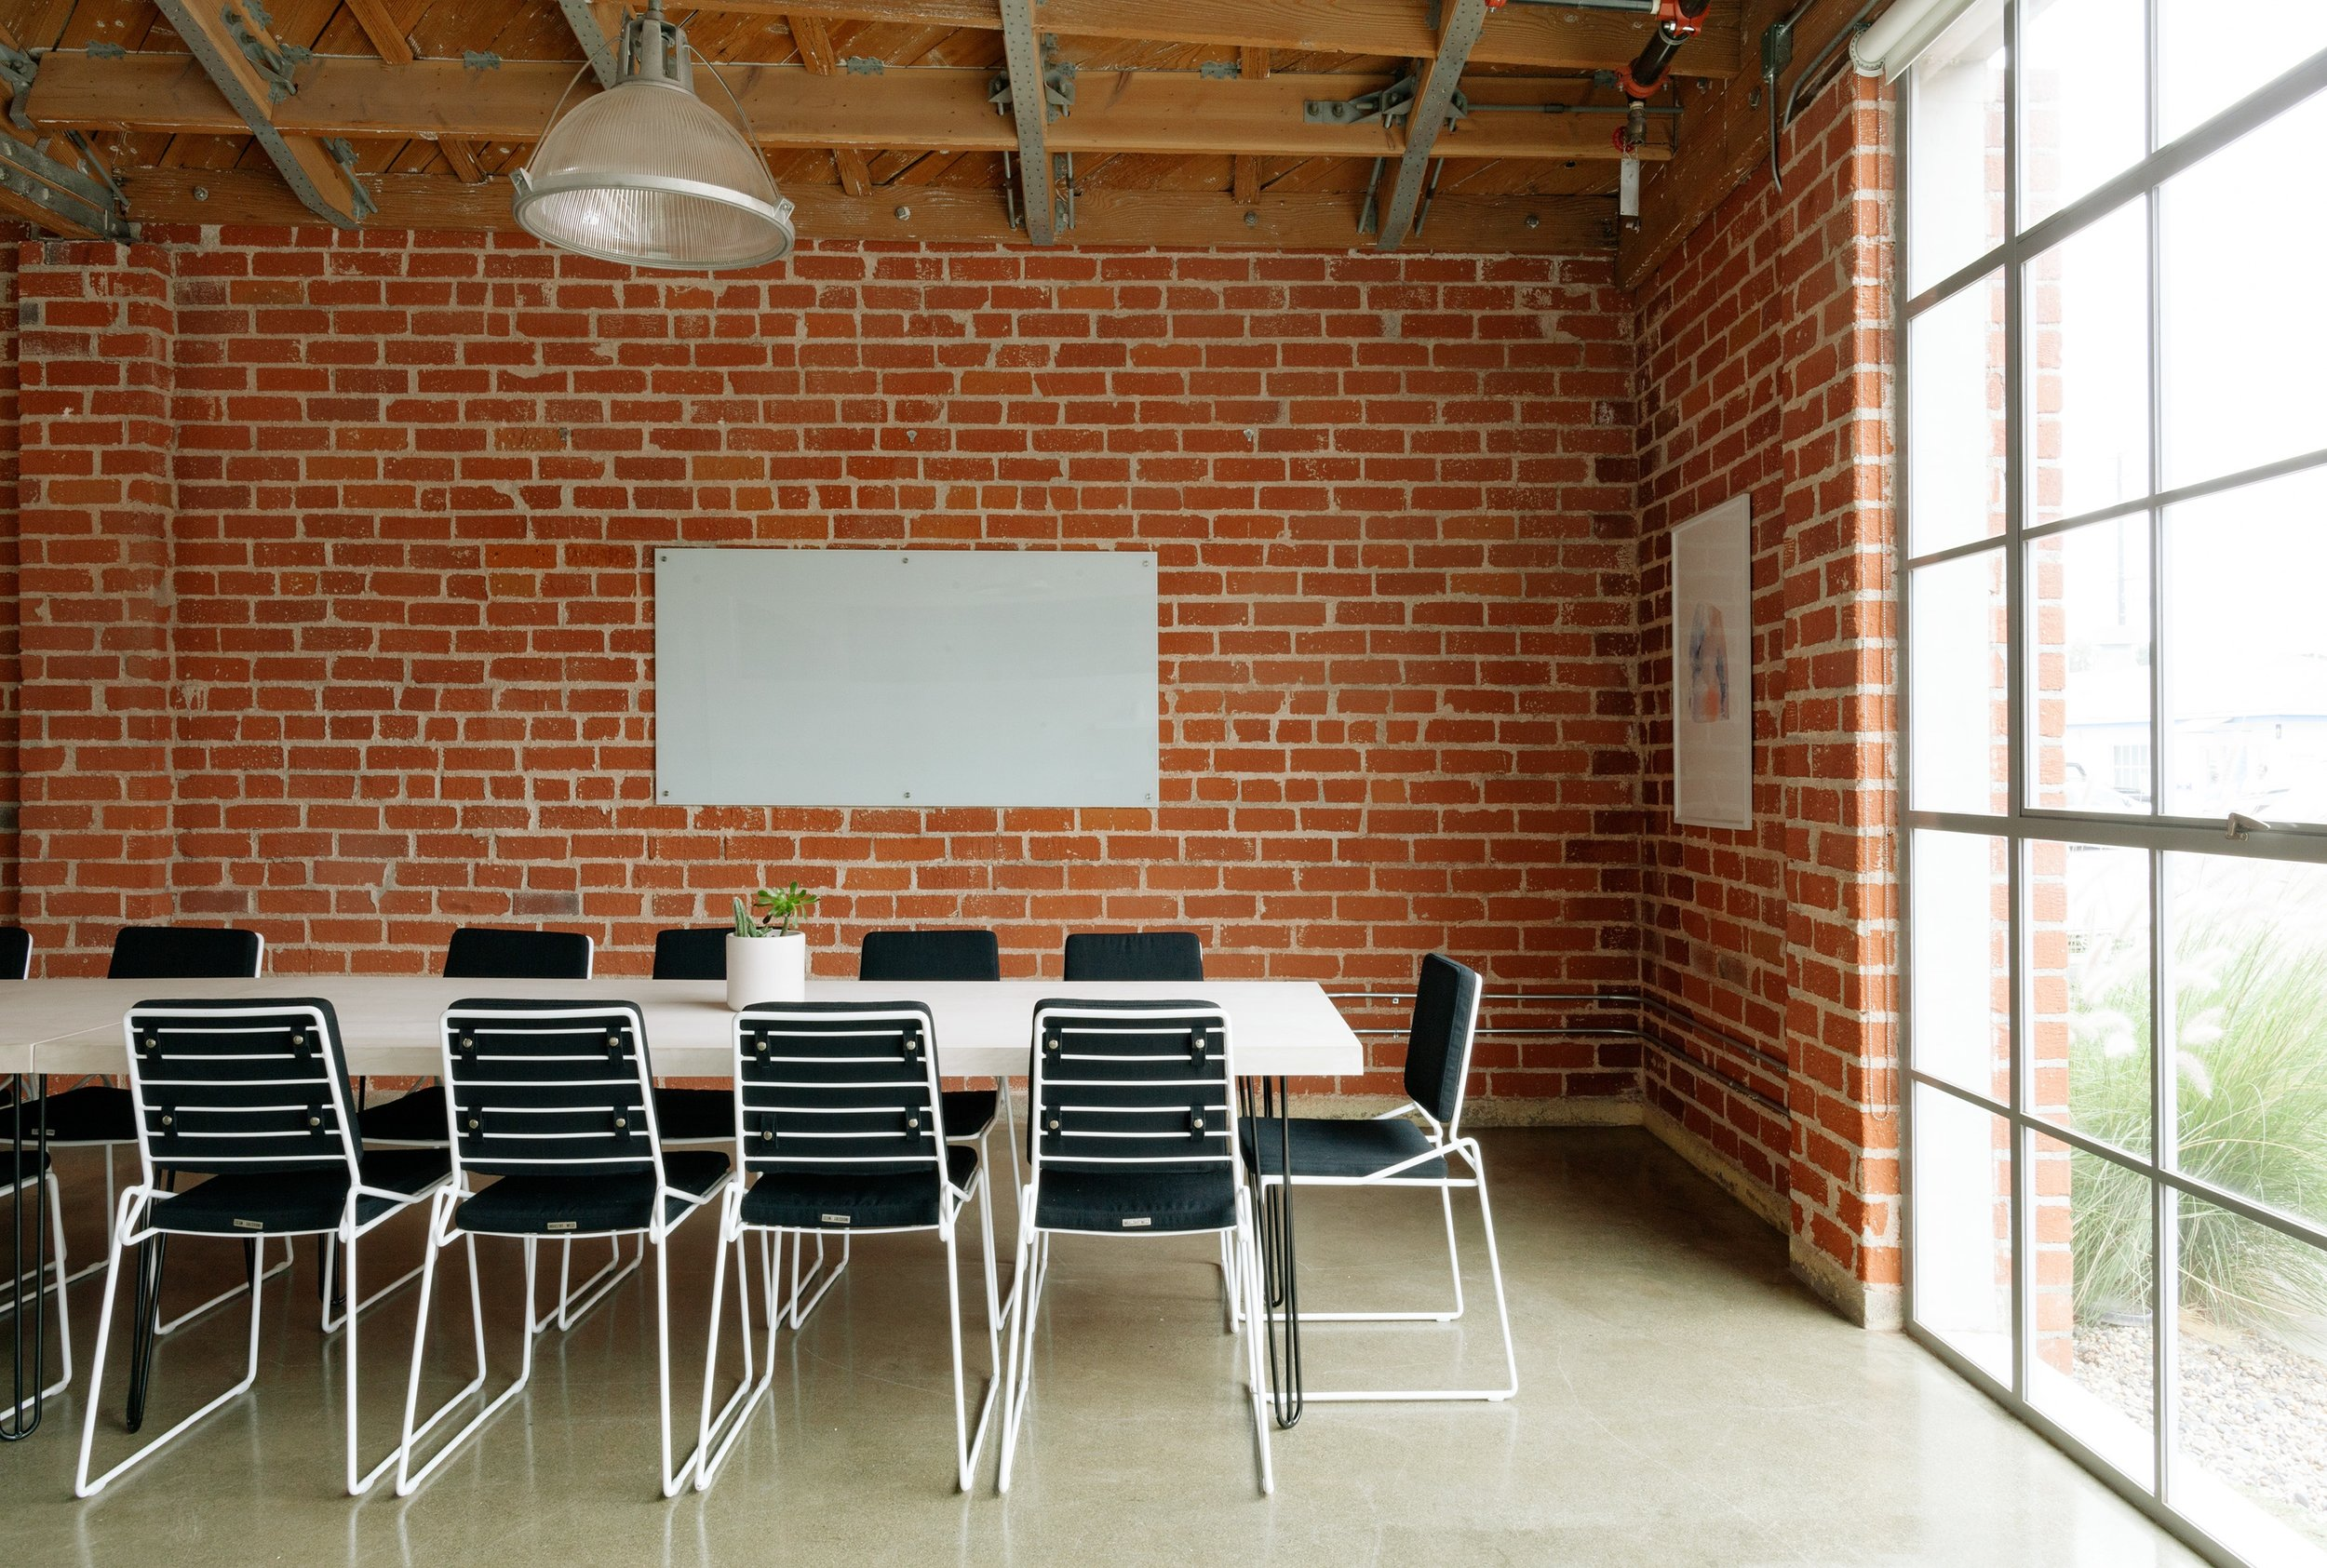 This boardroom can double as a shelter room!